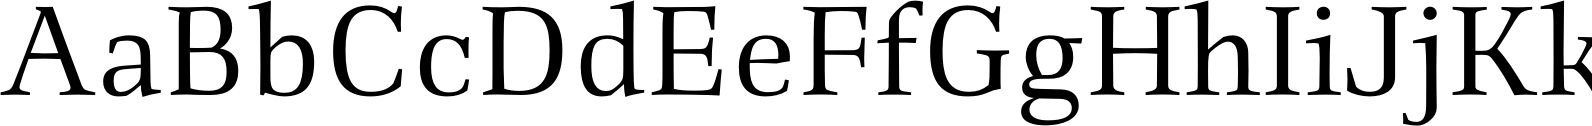 Richler Cyrillic Regular Font